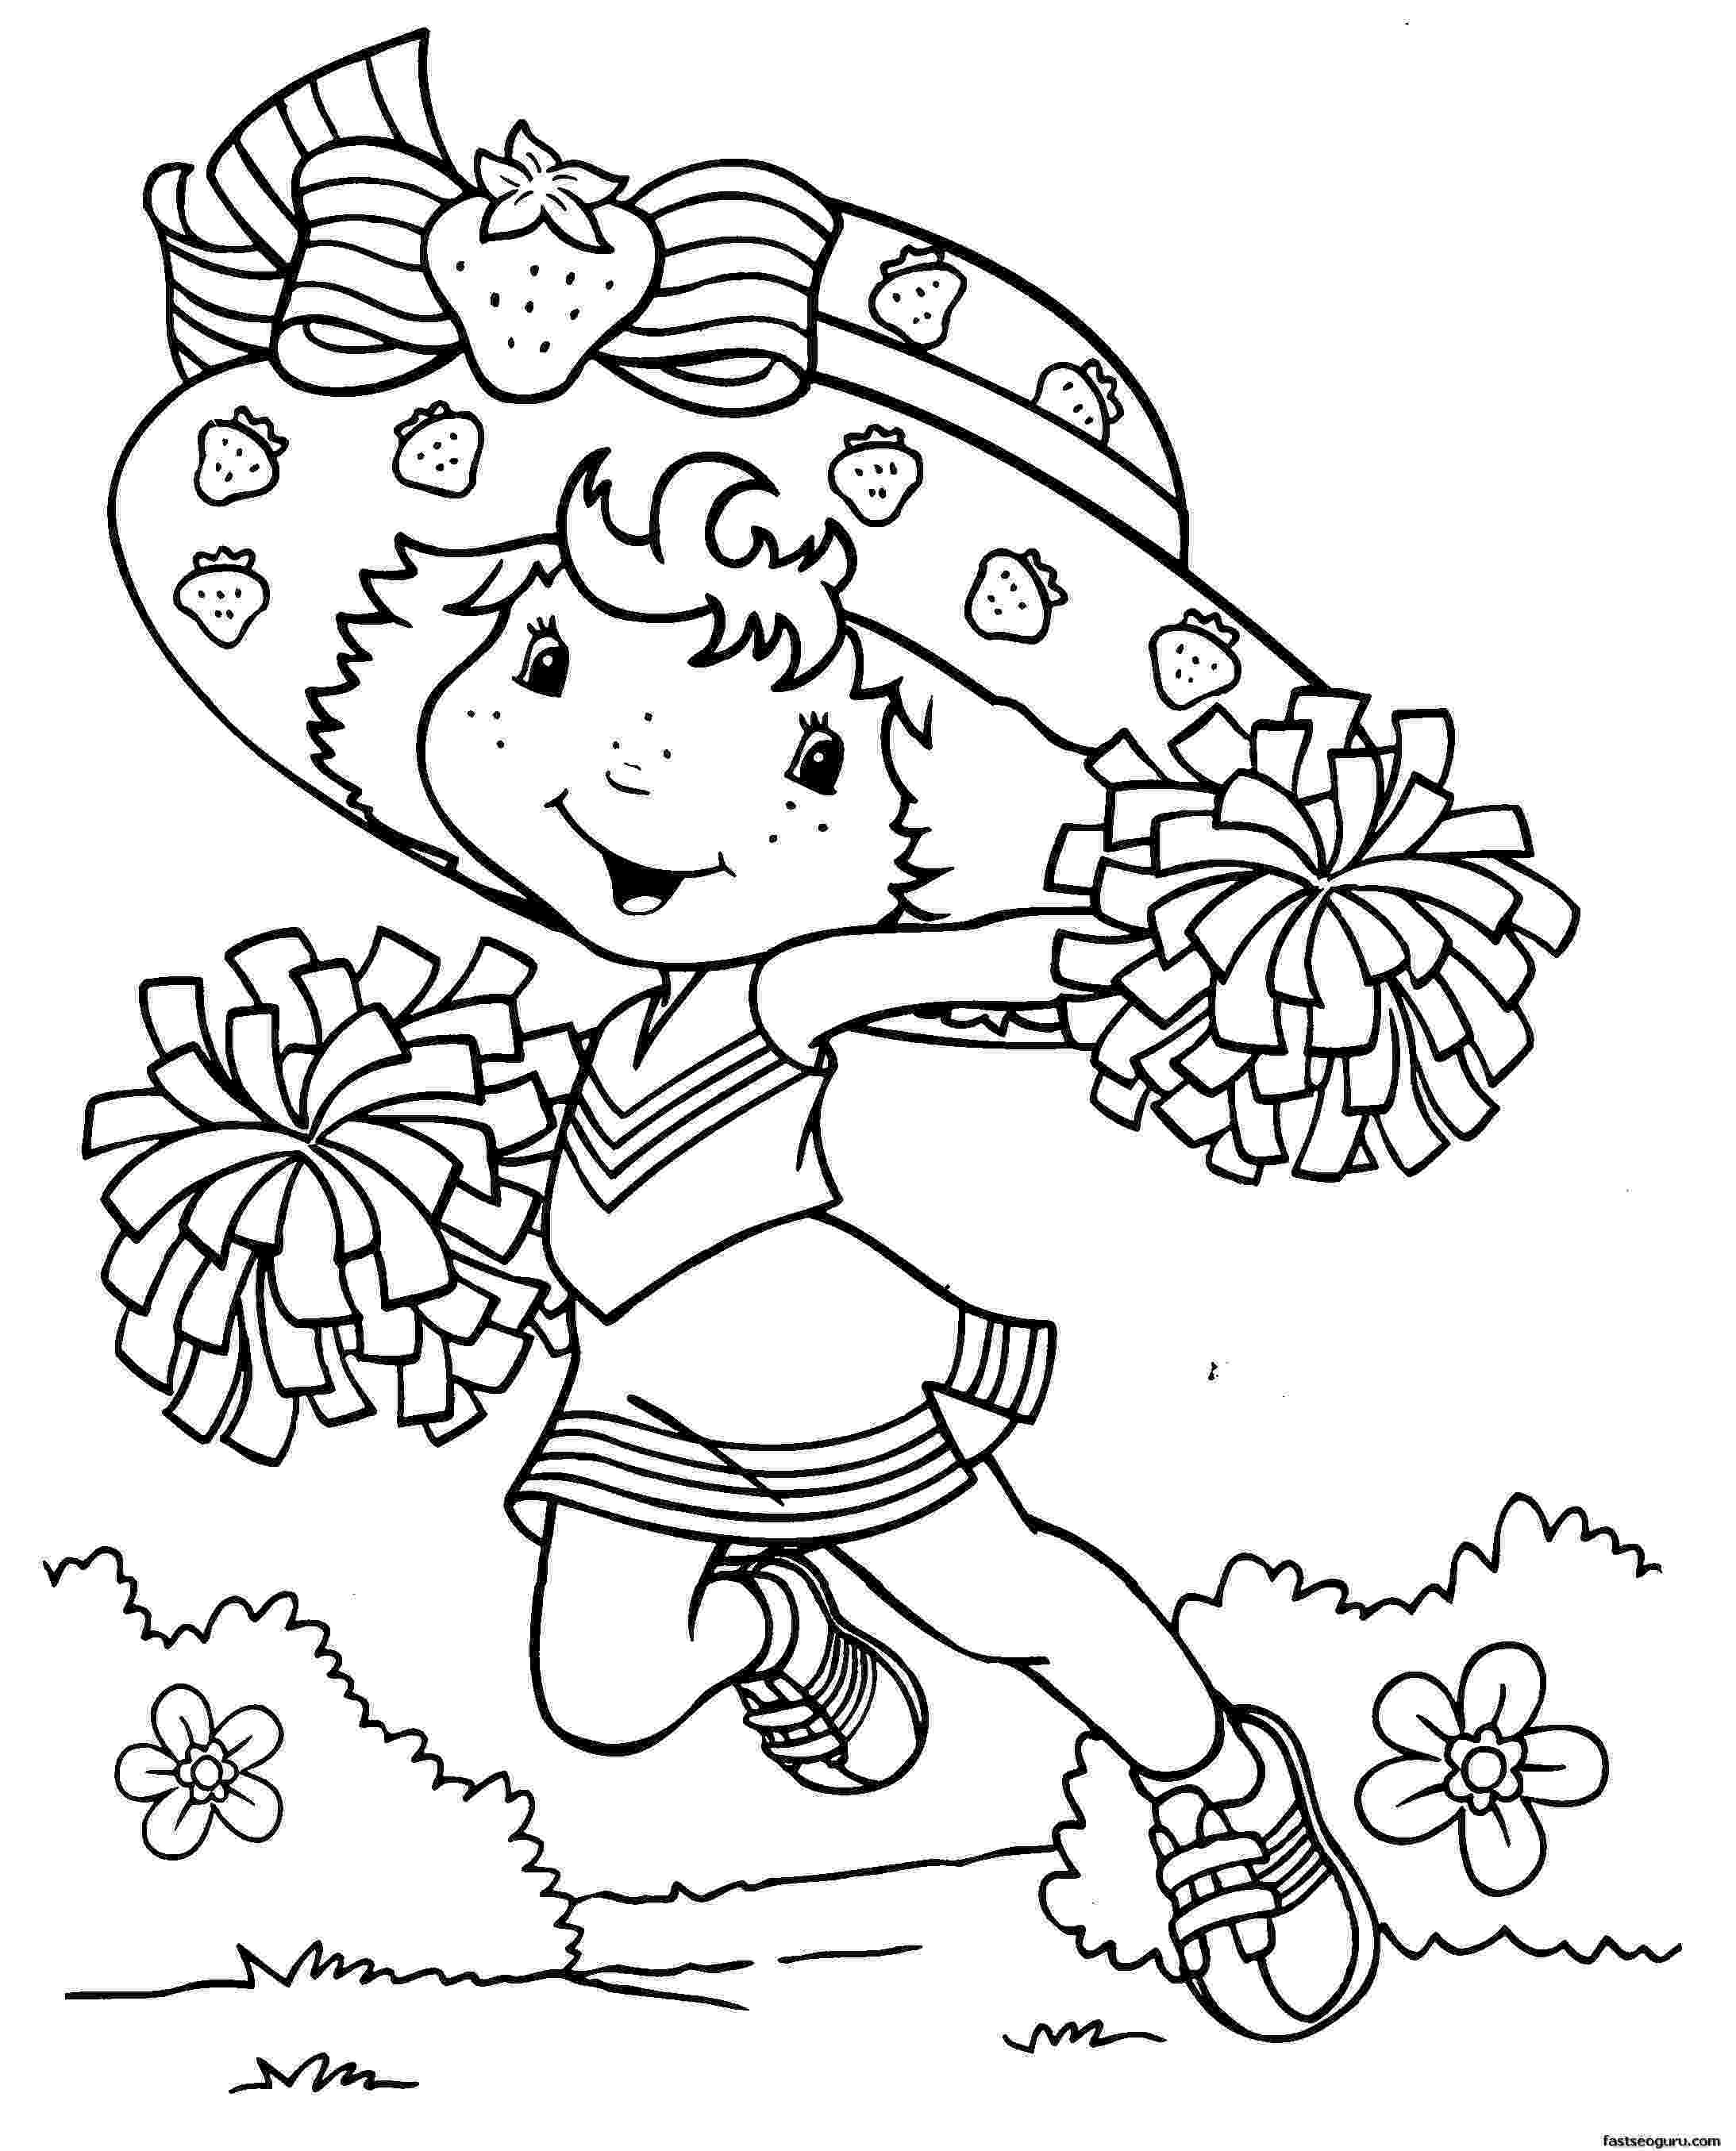 coloring sheets for girls to print coloring pages for 8910 year old girls to download and girls to for print sheets coloring